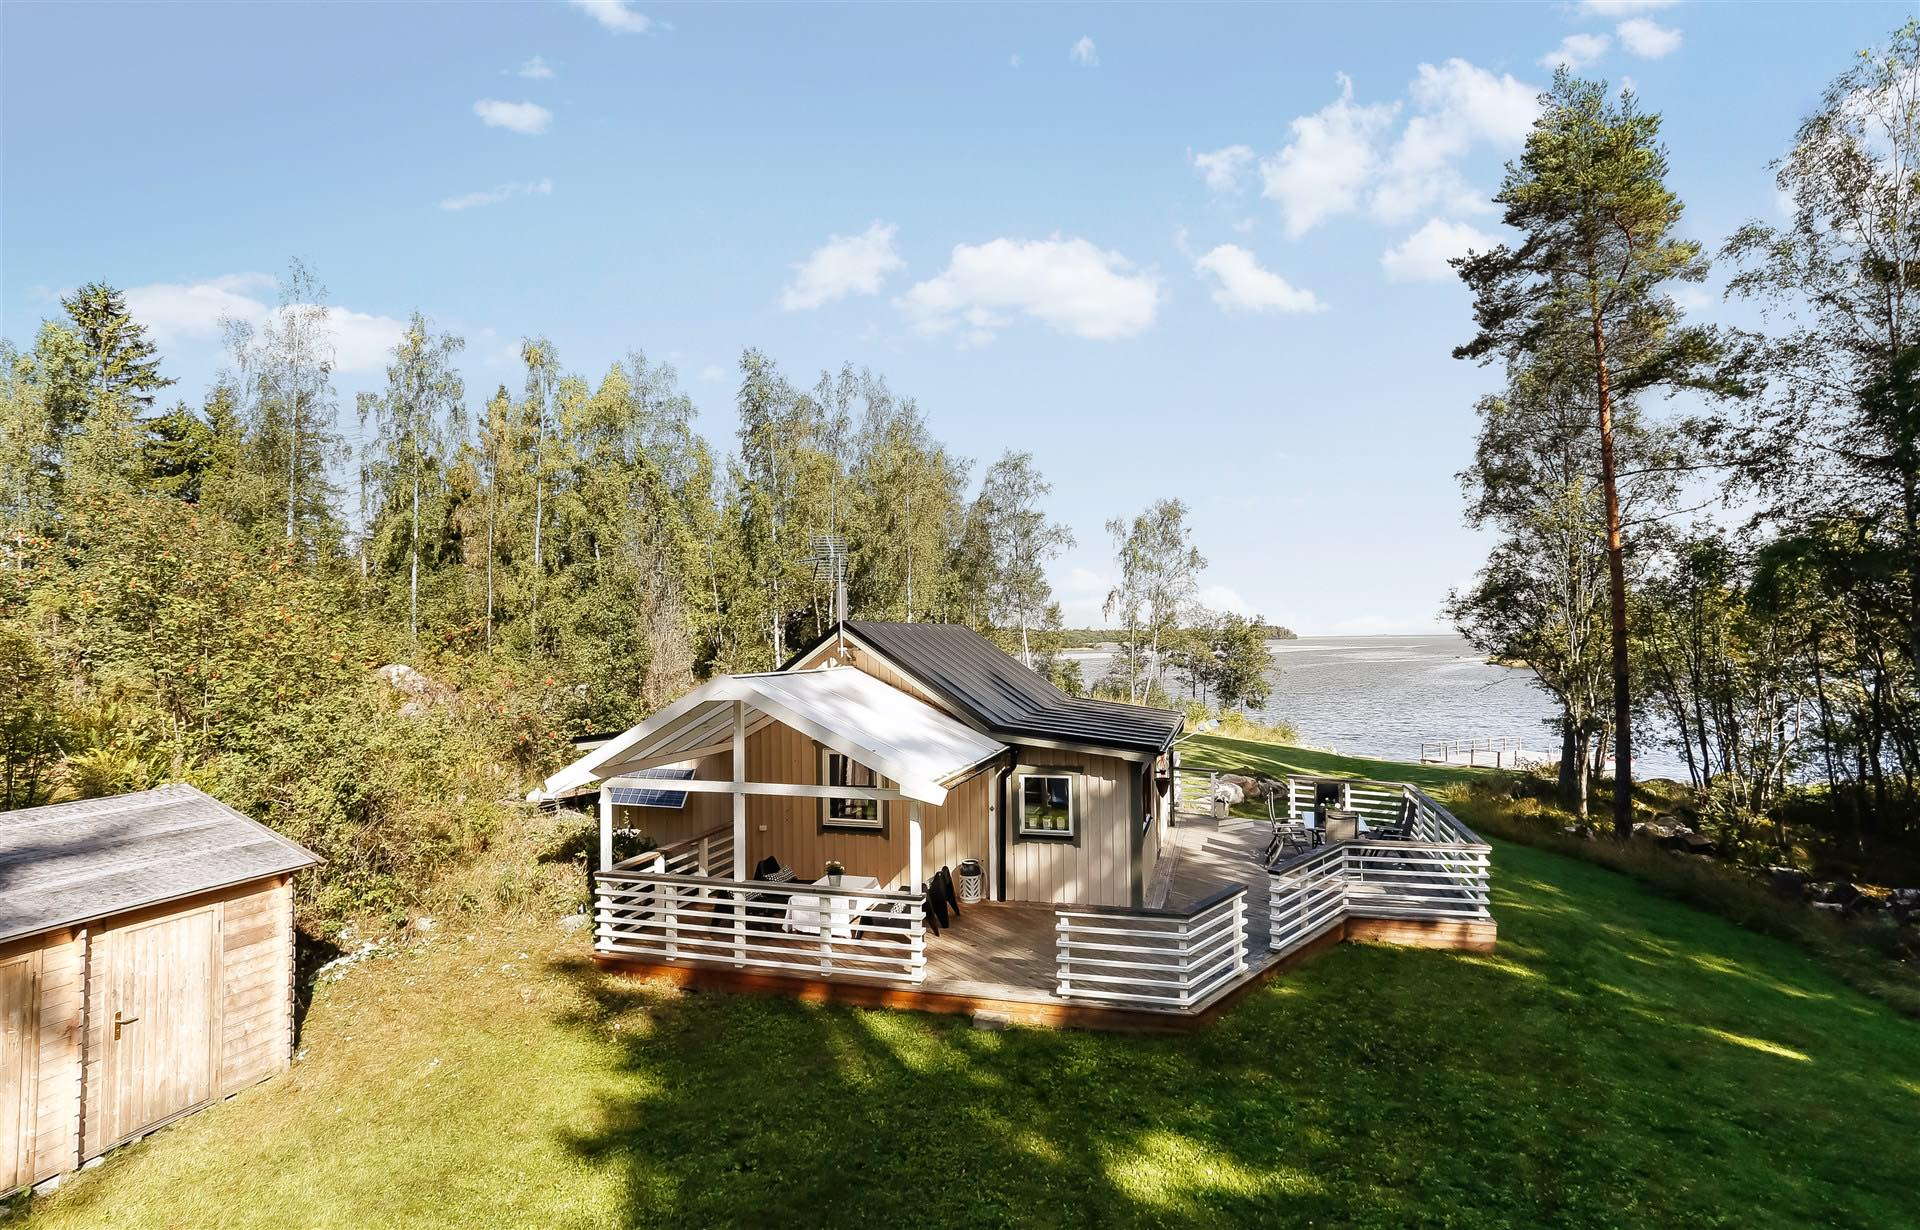 Little Off Grid Cottage Sweden as well Small House Bliss also 1930 Cottage In Karlholm Bay Sweden Guesthouse Via Smallhousebliss besides Little Off Grid Cottage Sweden moreover respond. on 1930 cottage in karlholm bay sweden